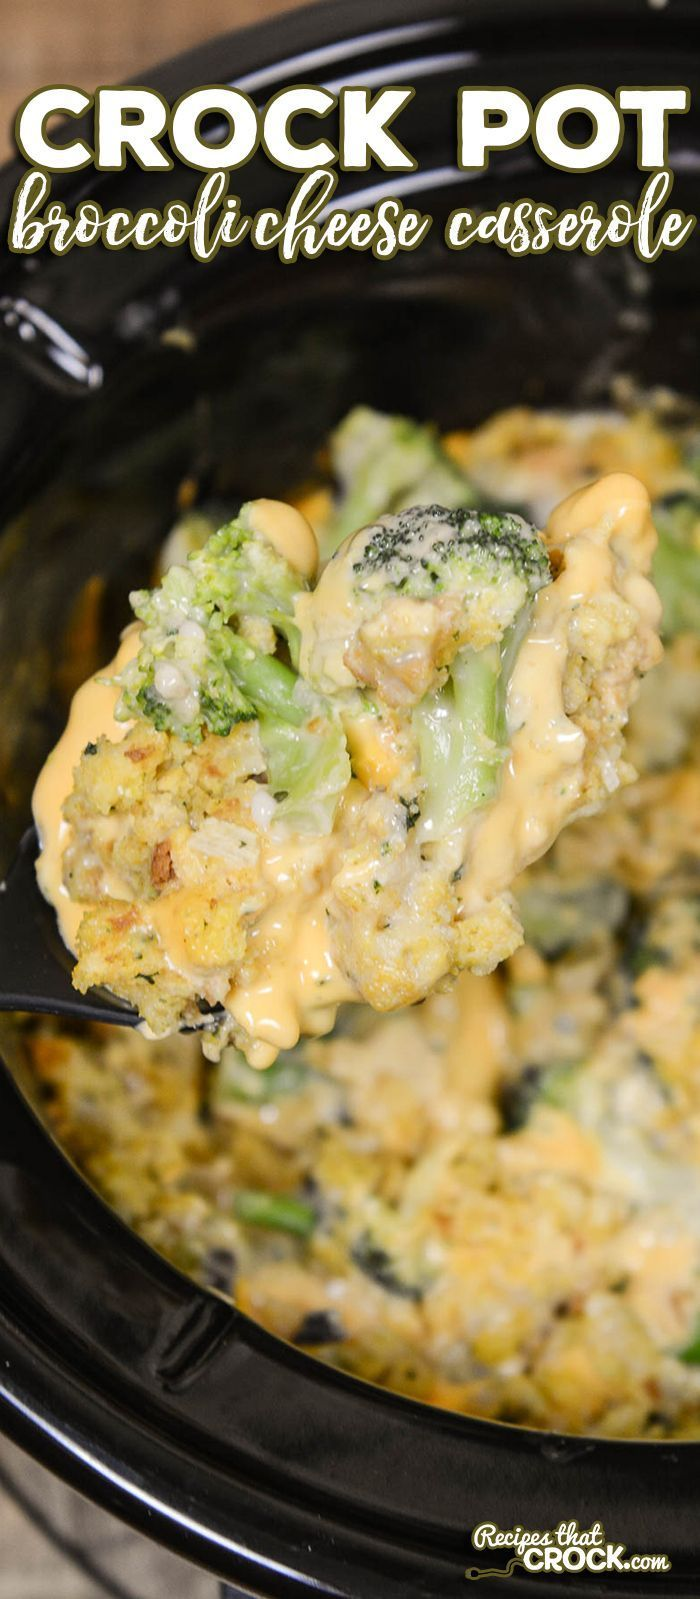 Crock Pot Broccoli Cheese Casserole is a delicious side dish slow cooker recipe perfect for holidays, potlucks or a special weeknight treat for family dinner!